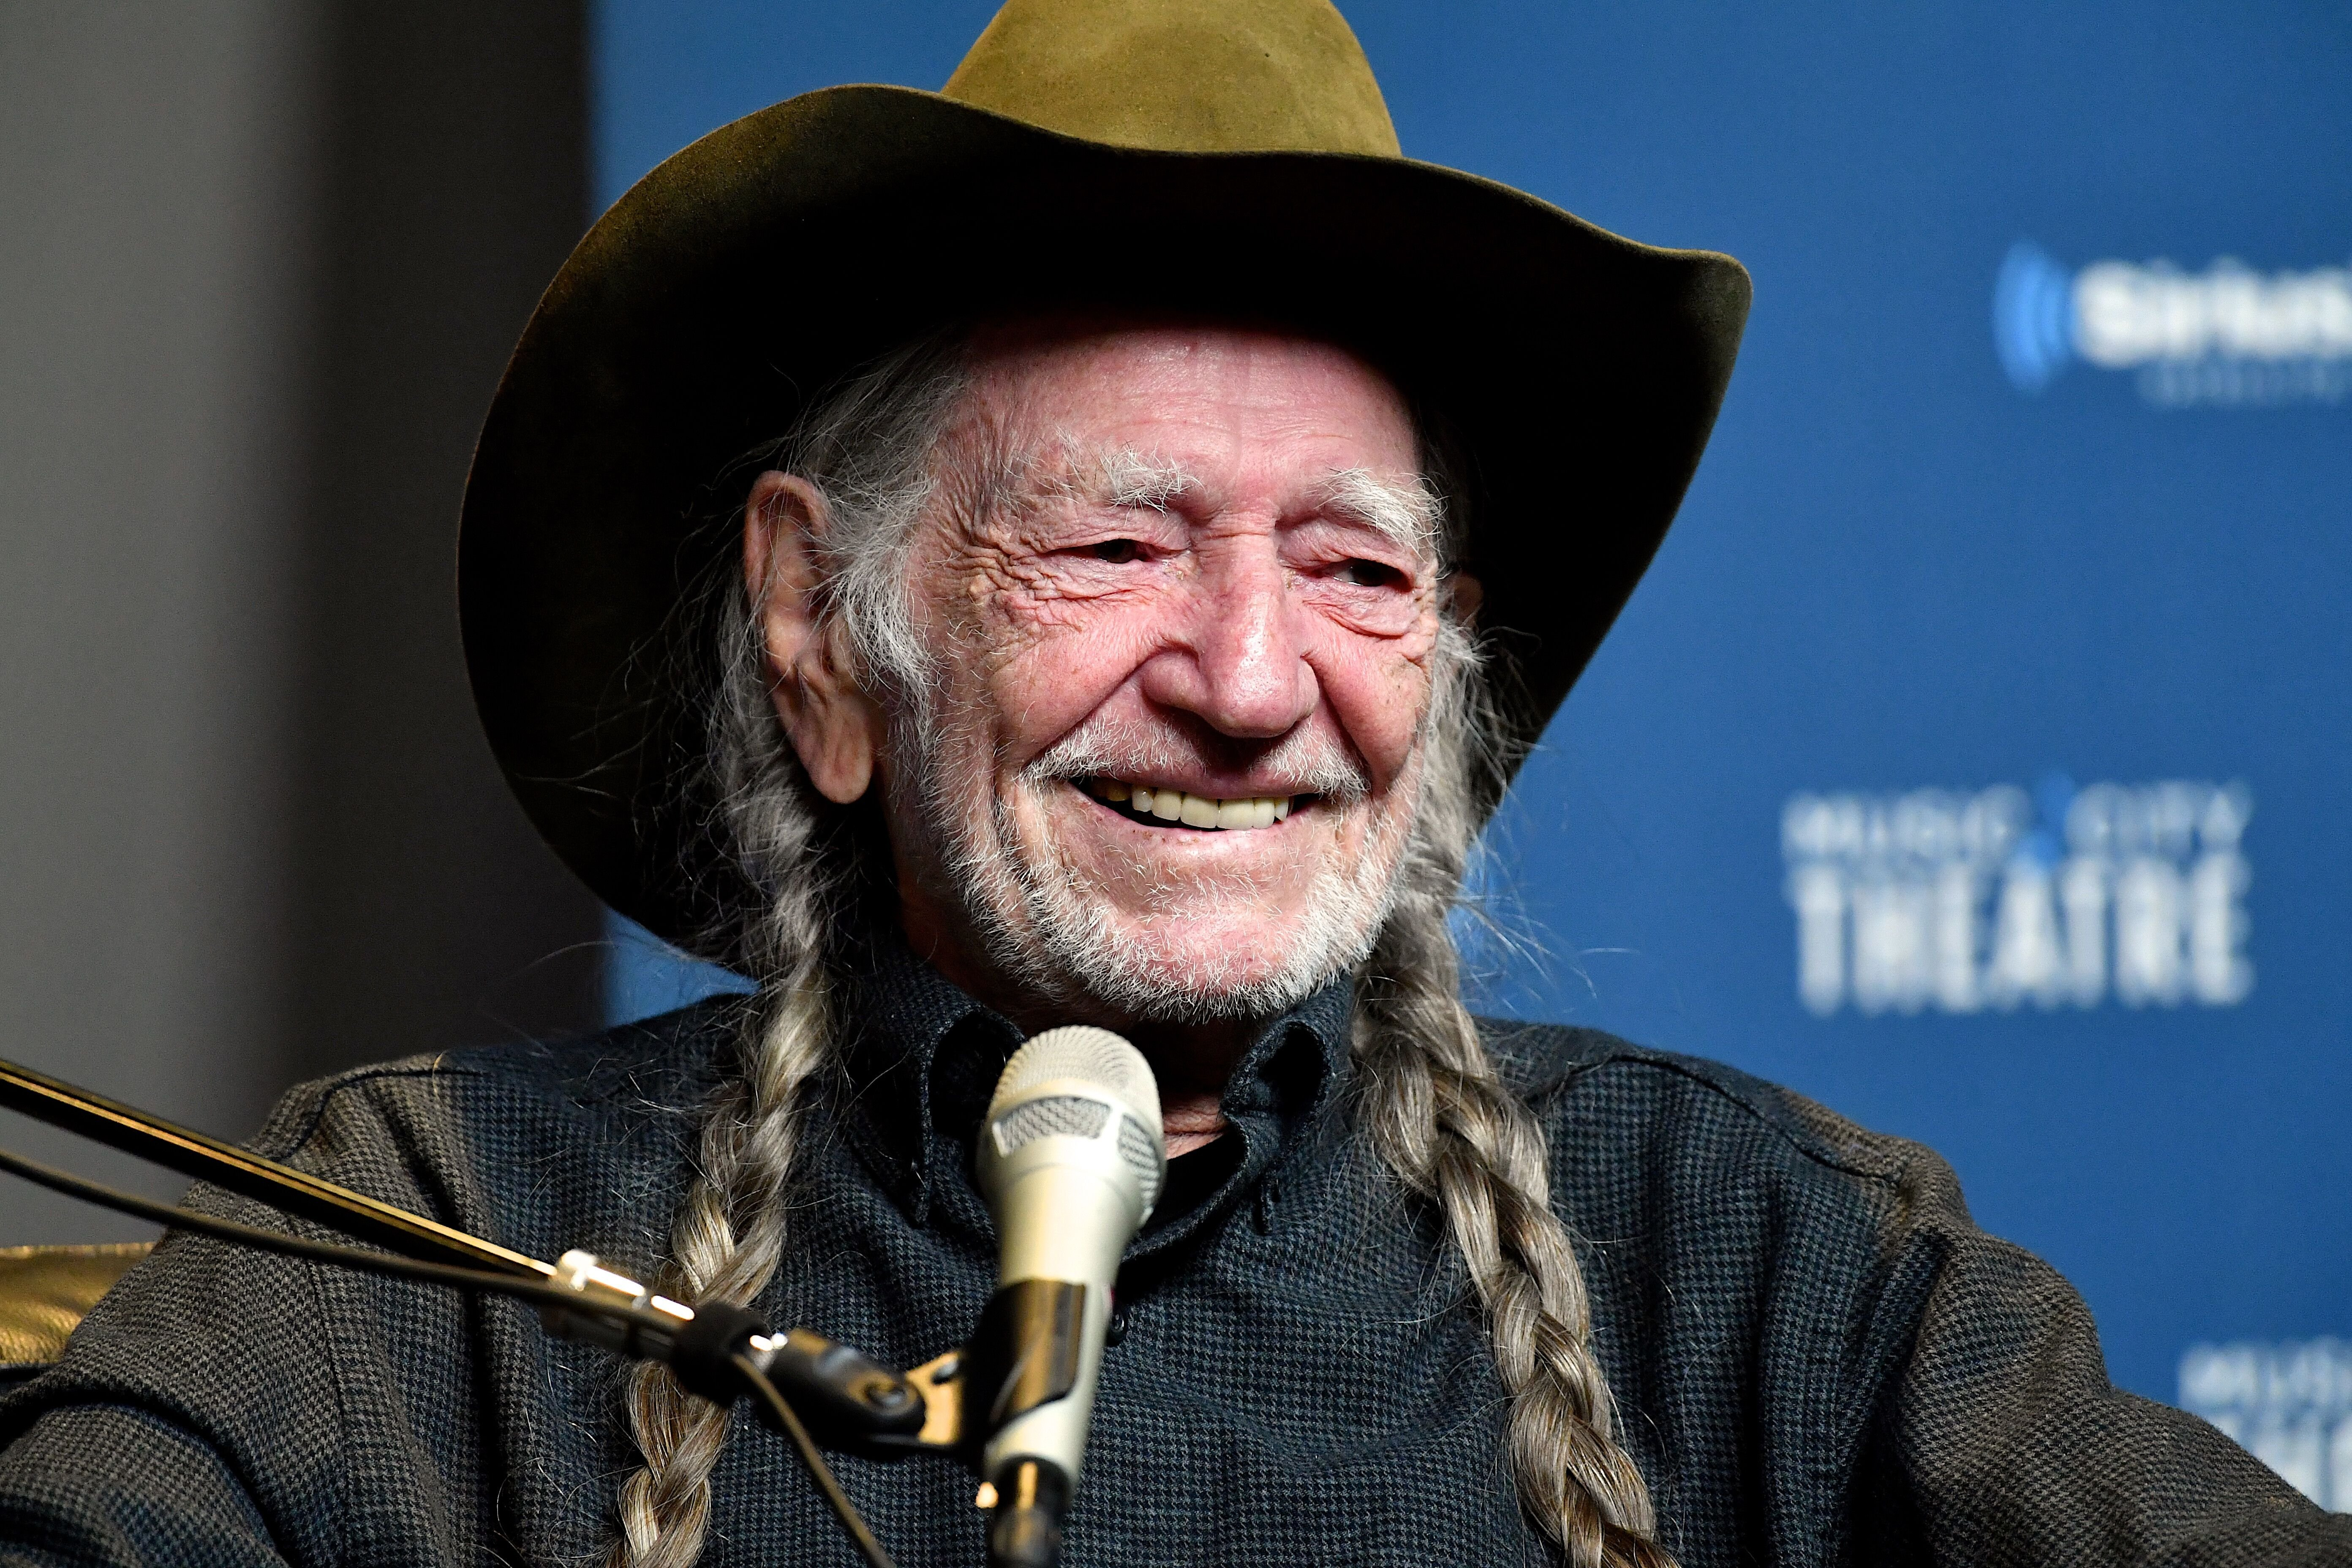 Willie Nelson speaks onstage at his album premiere. | Source: Getty Images